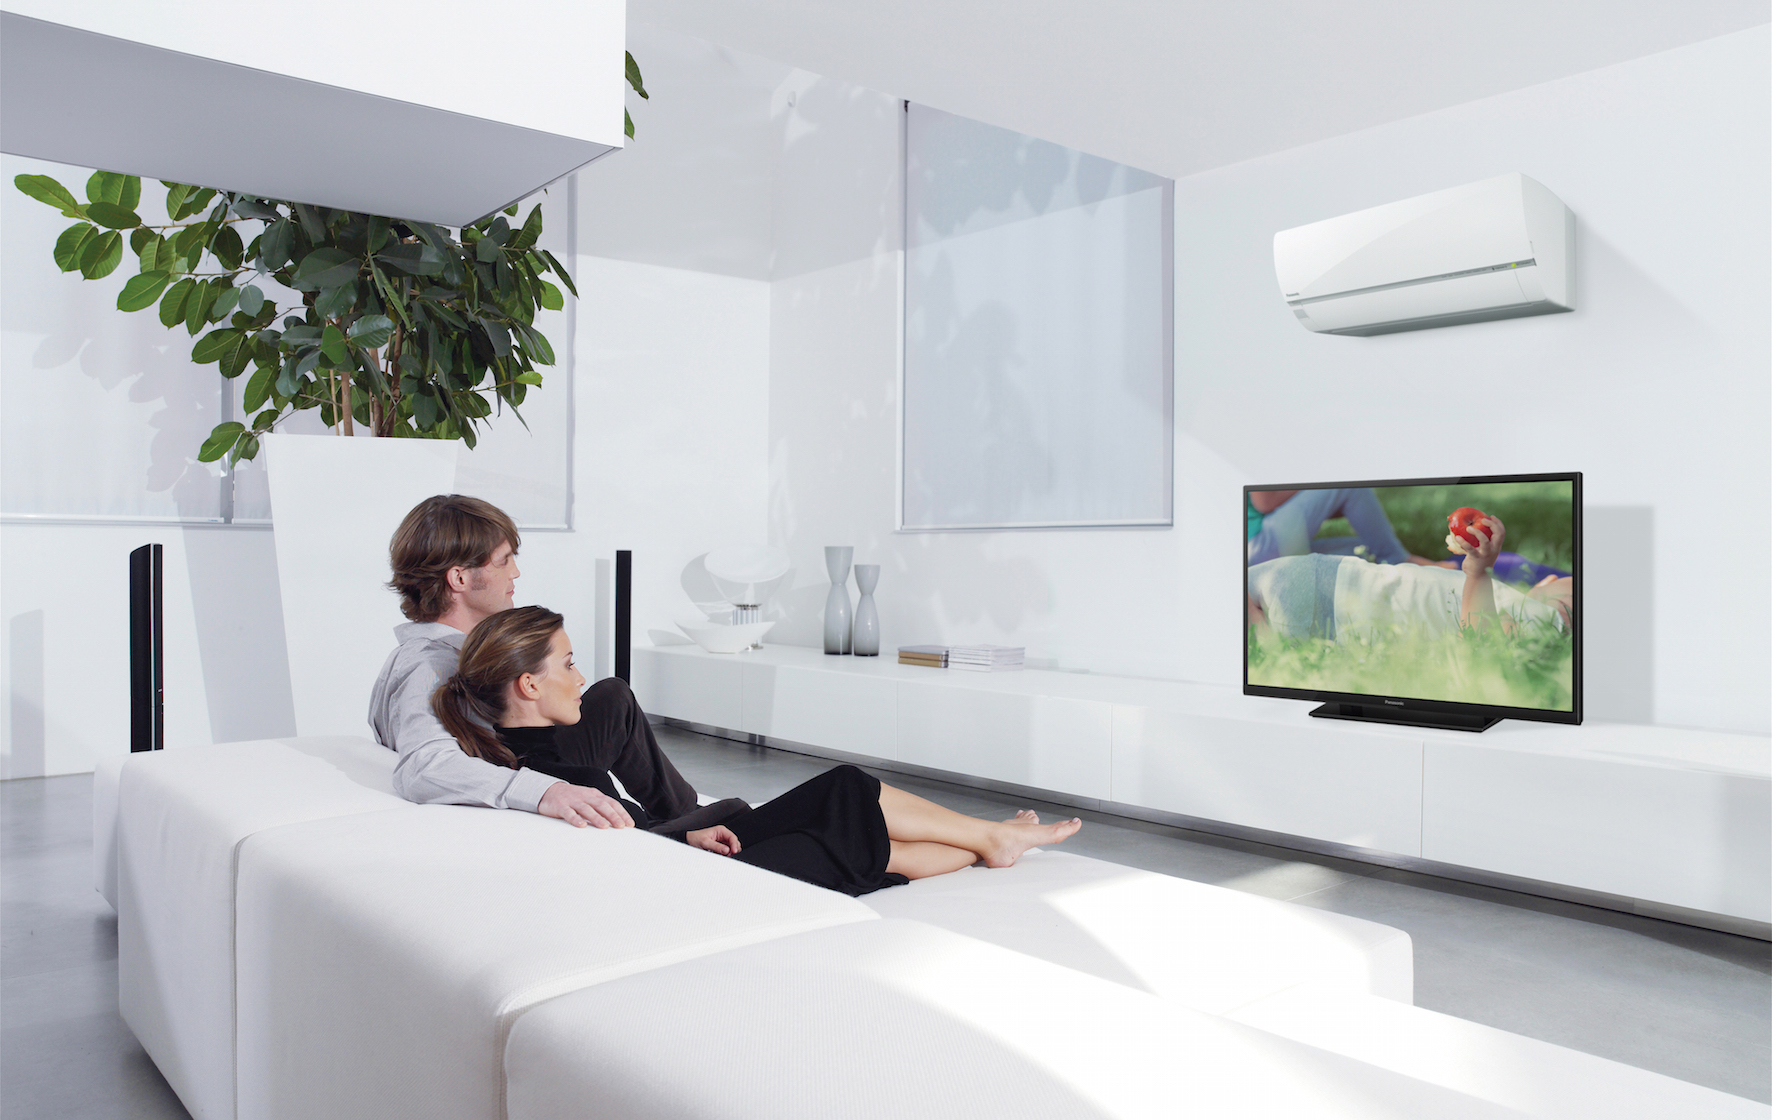 Panasonic heating and cooling econavi system feature